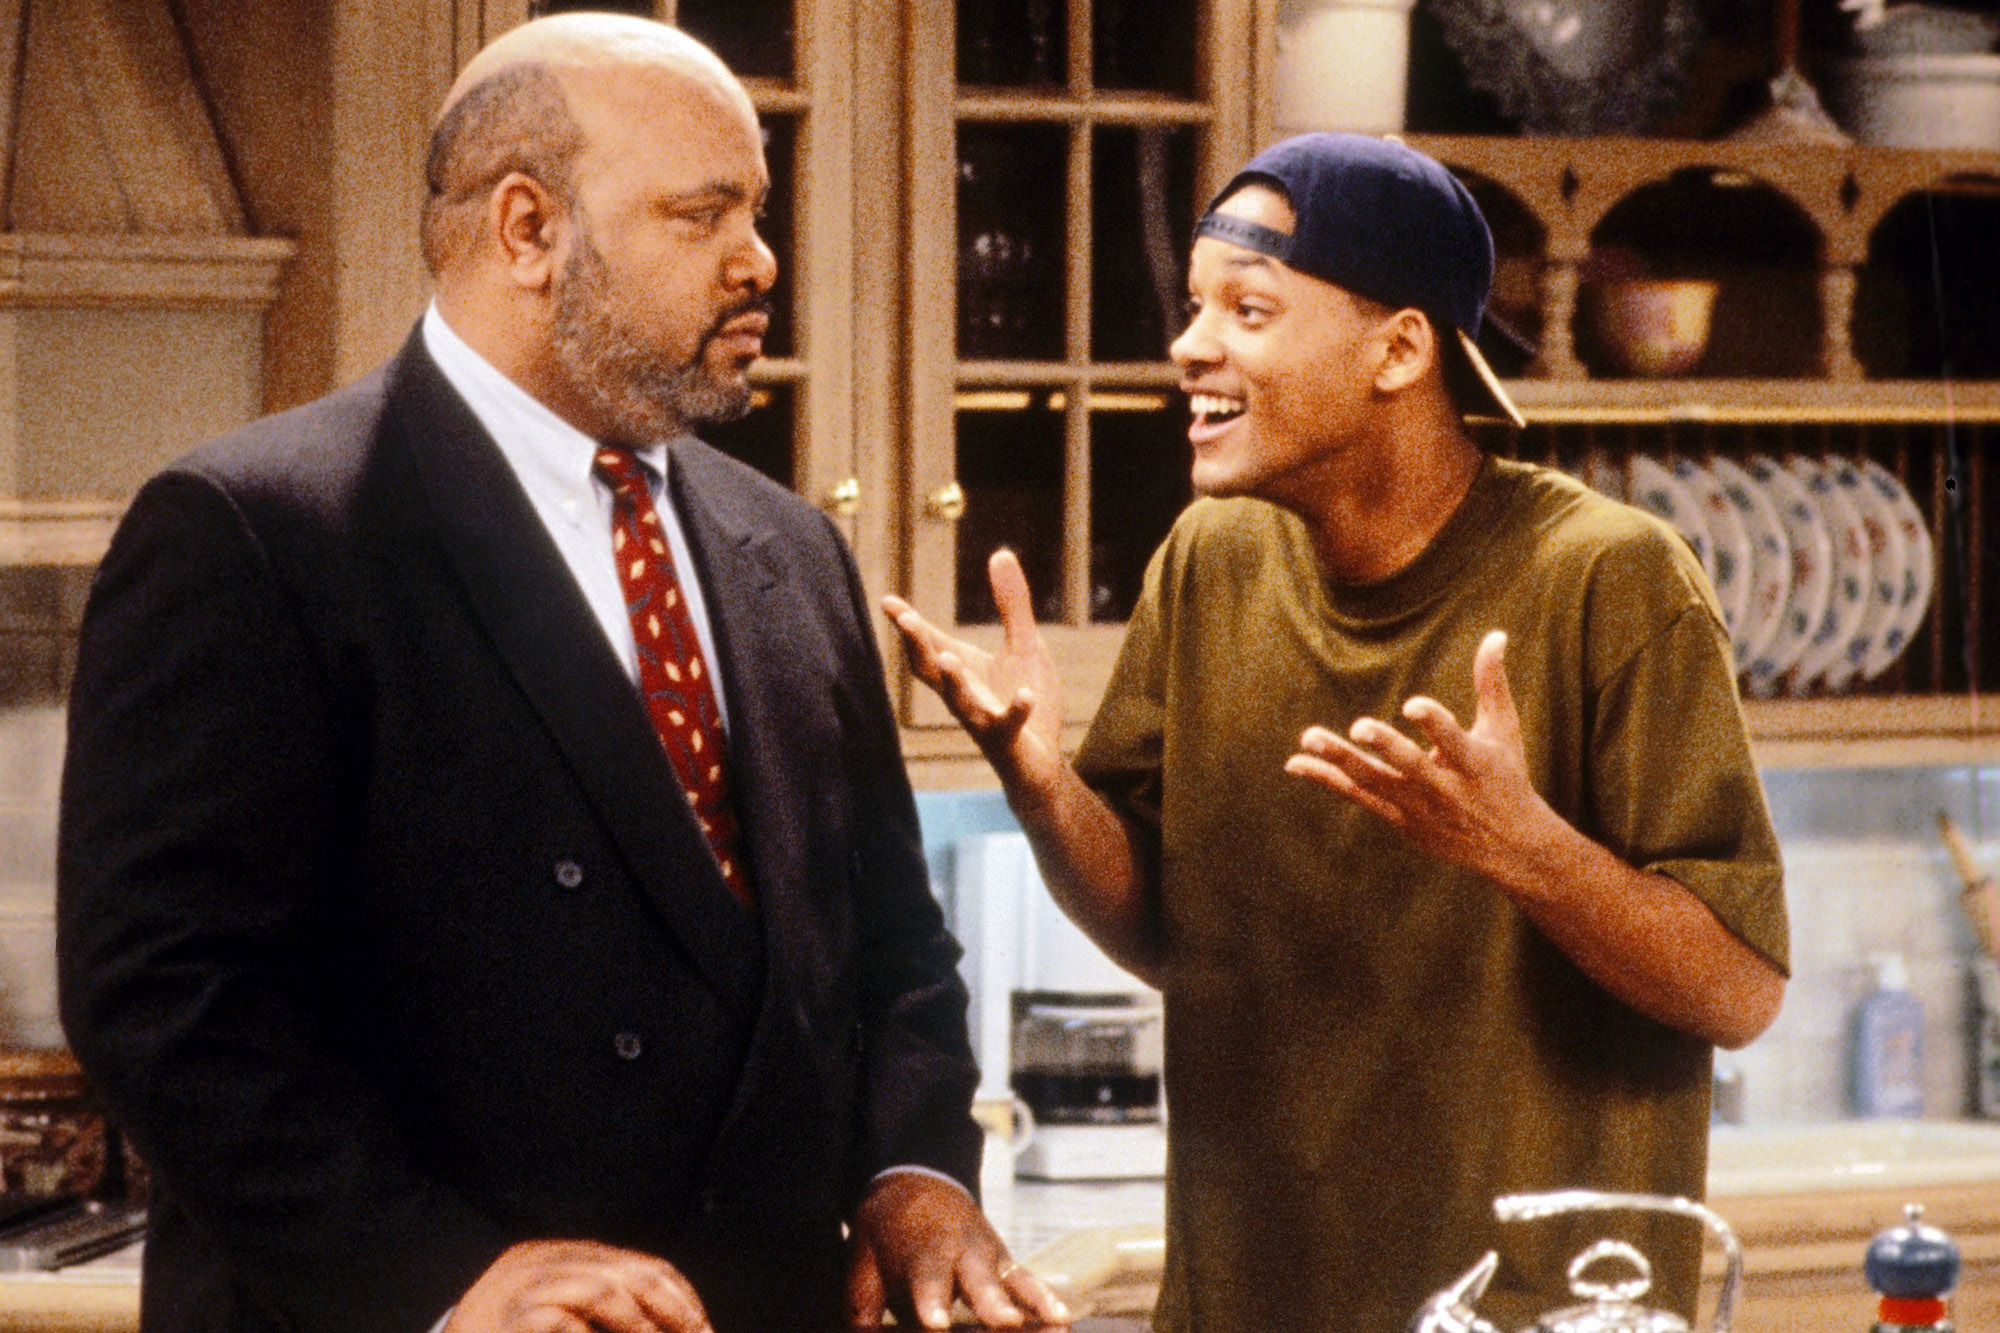 Uncle phil fresh prince died